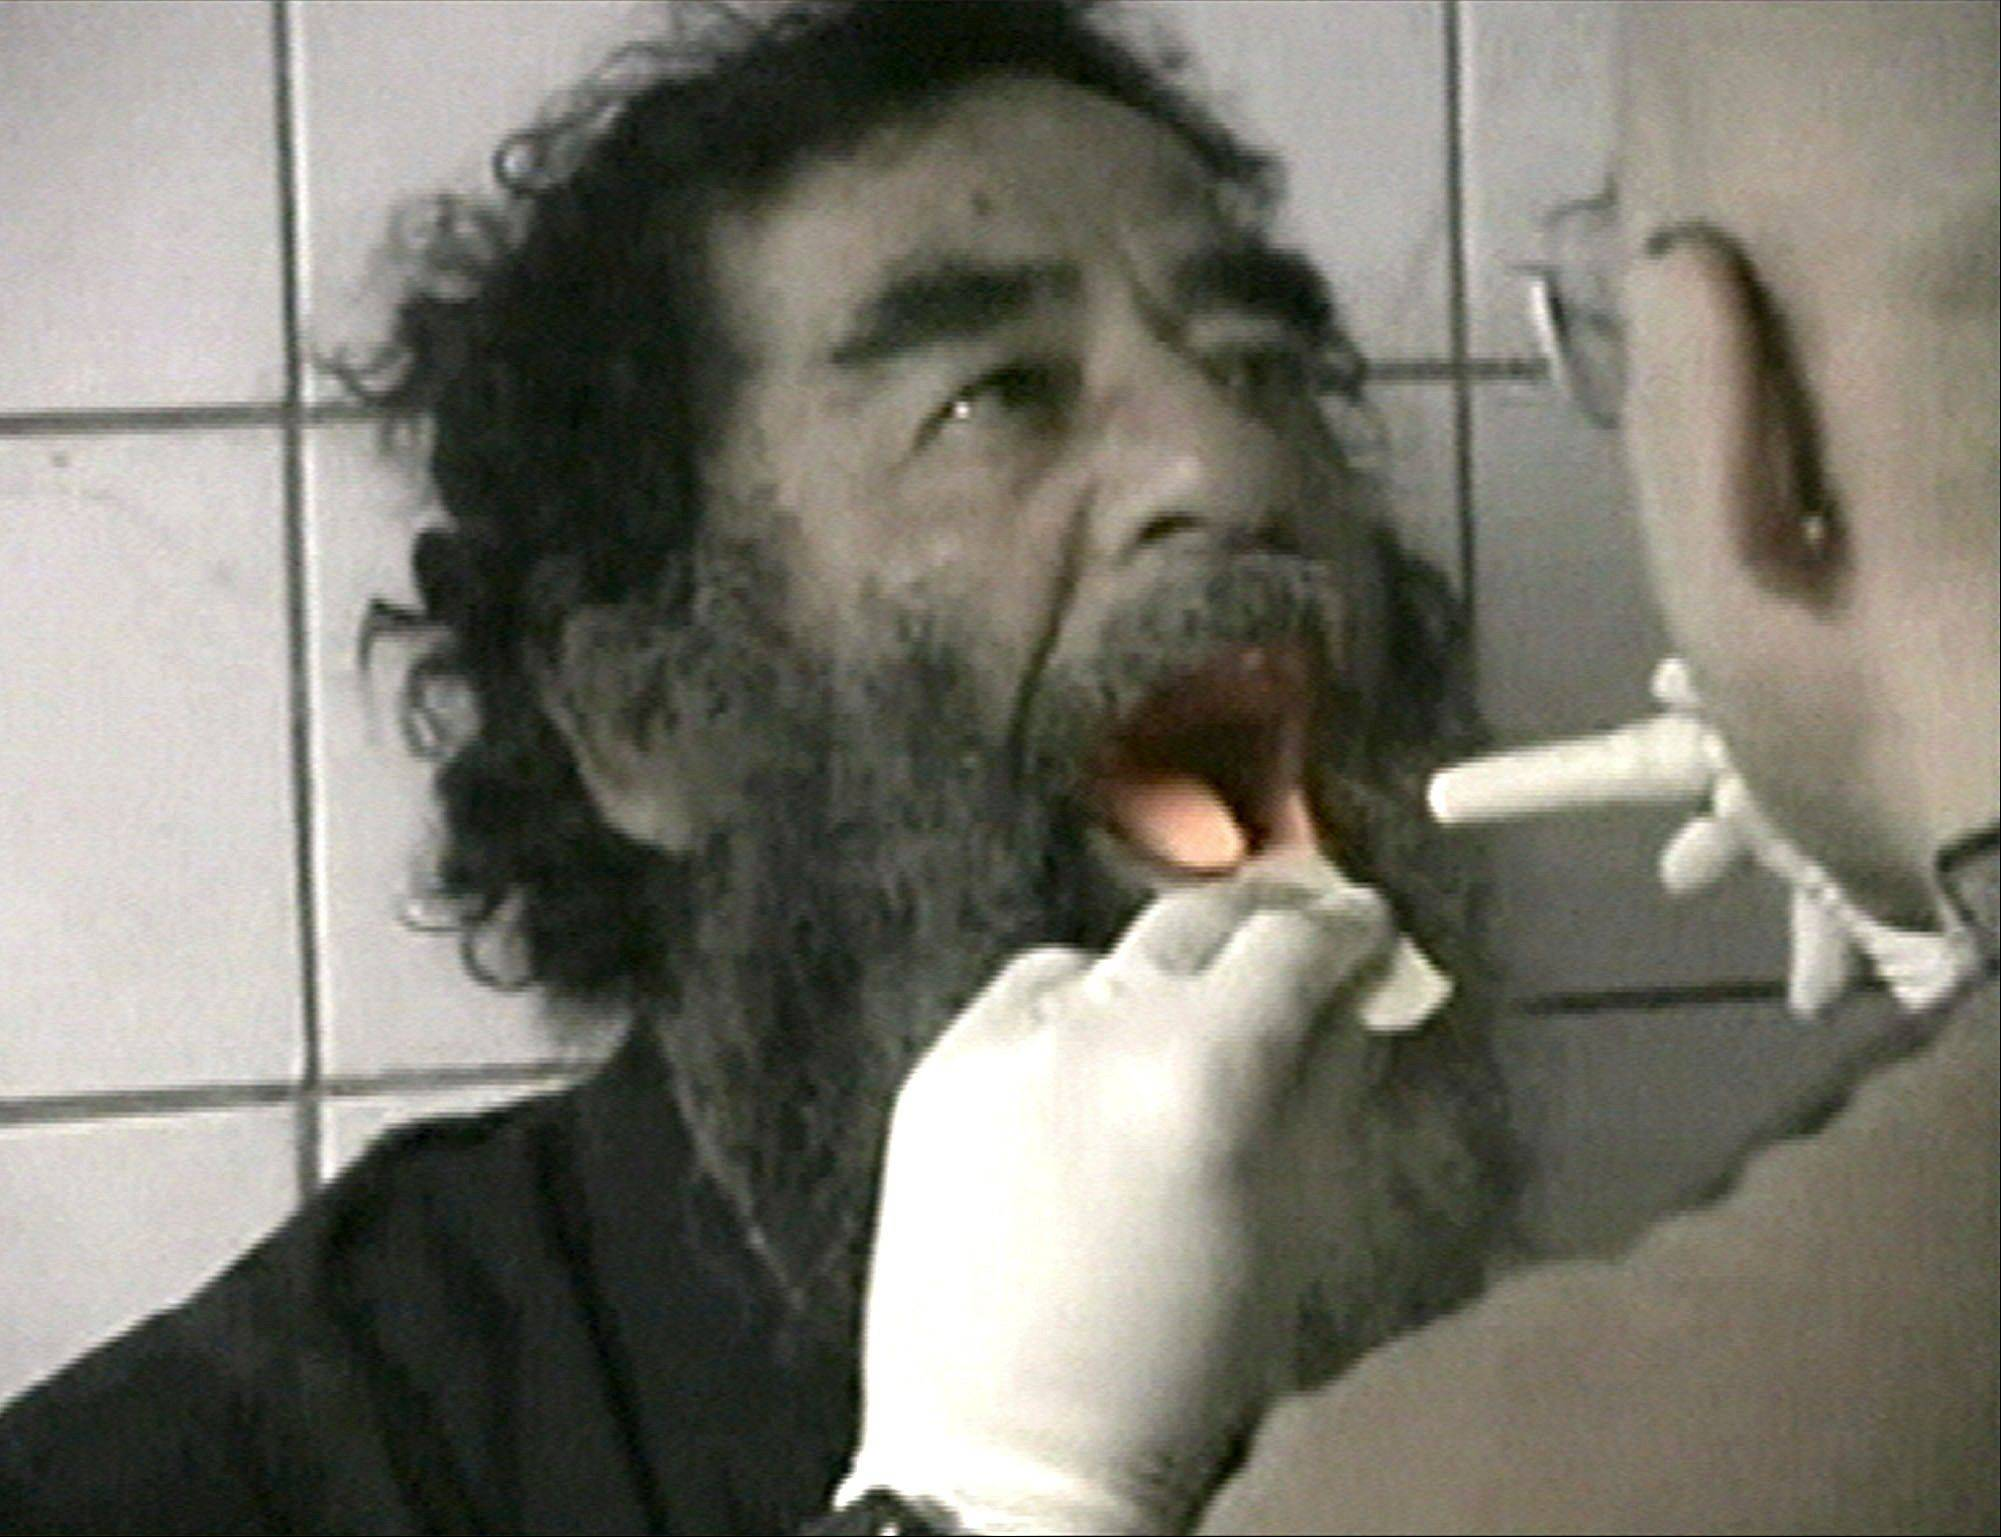 FILE - Captured former Iraqi leader Saddam Hussein undergoes a medical examination in Baghdad on Dec. 14, 2003 in this image made from video.